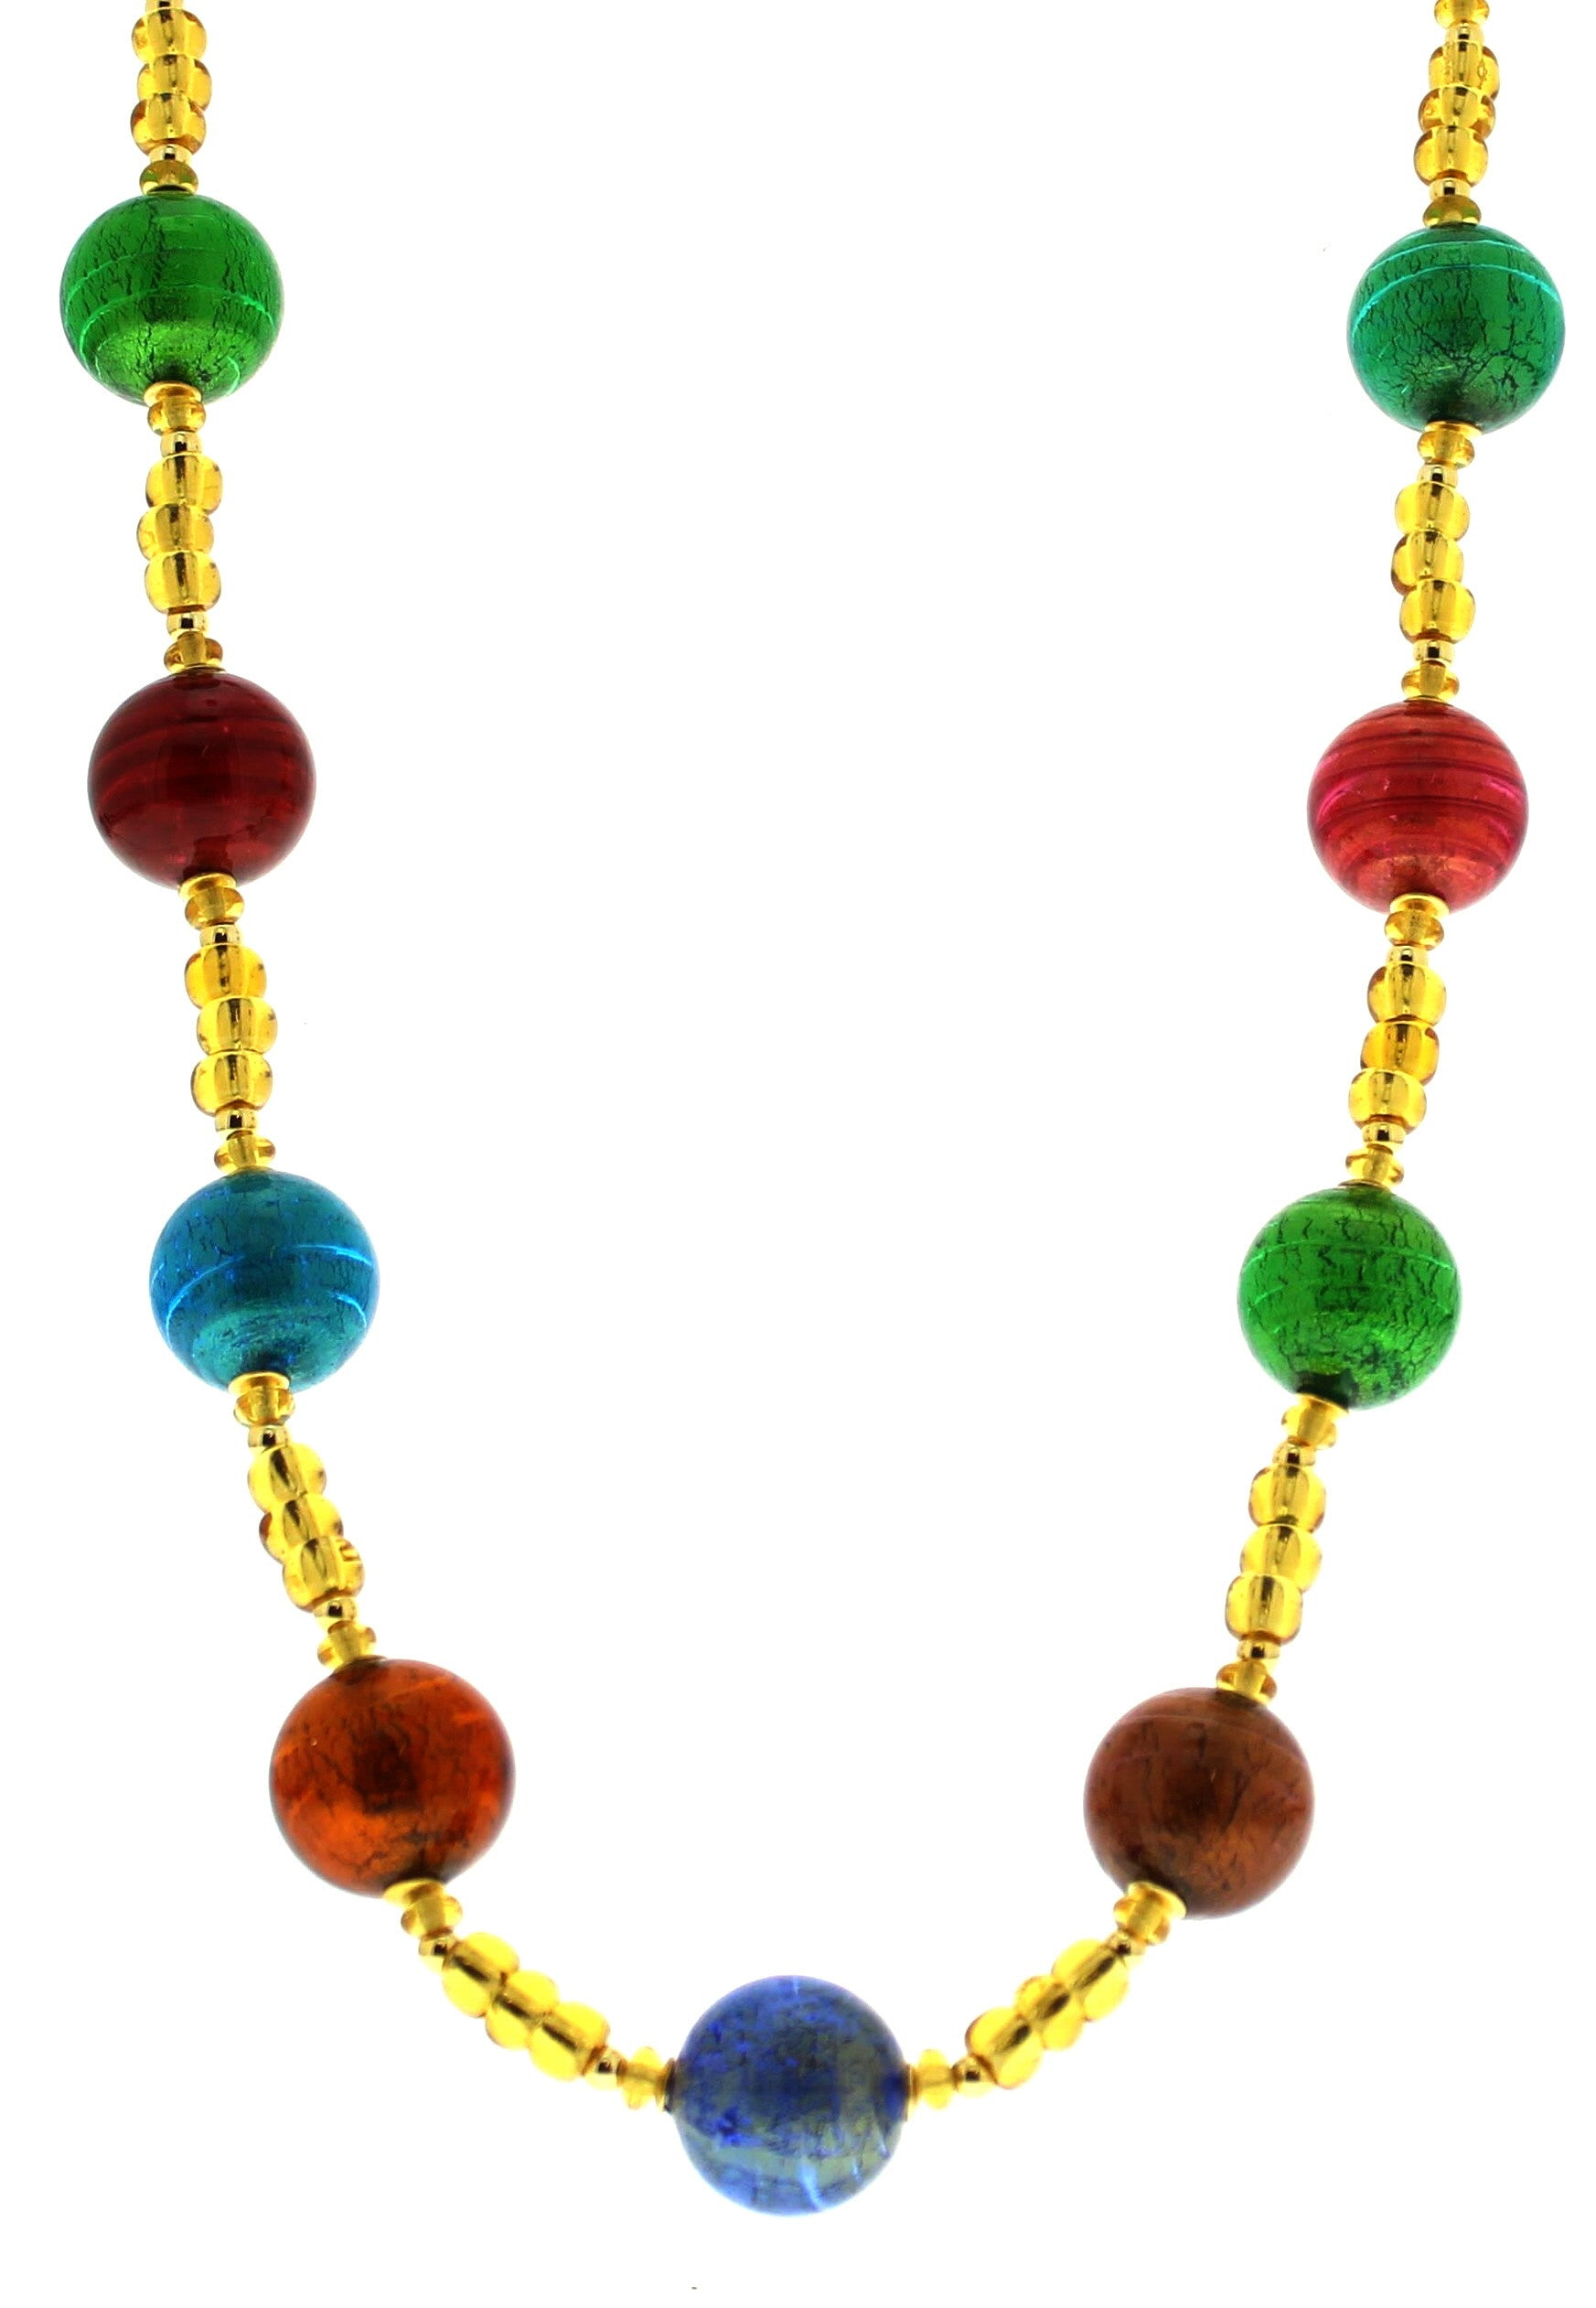 Murano Round Beads Necklace